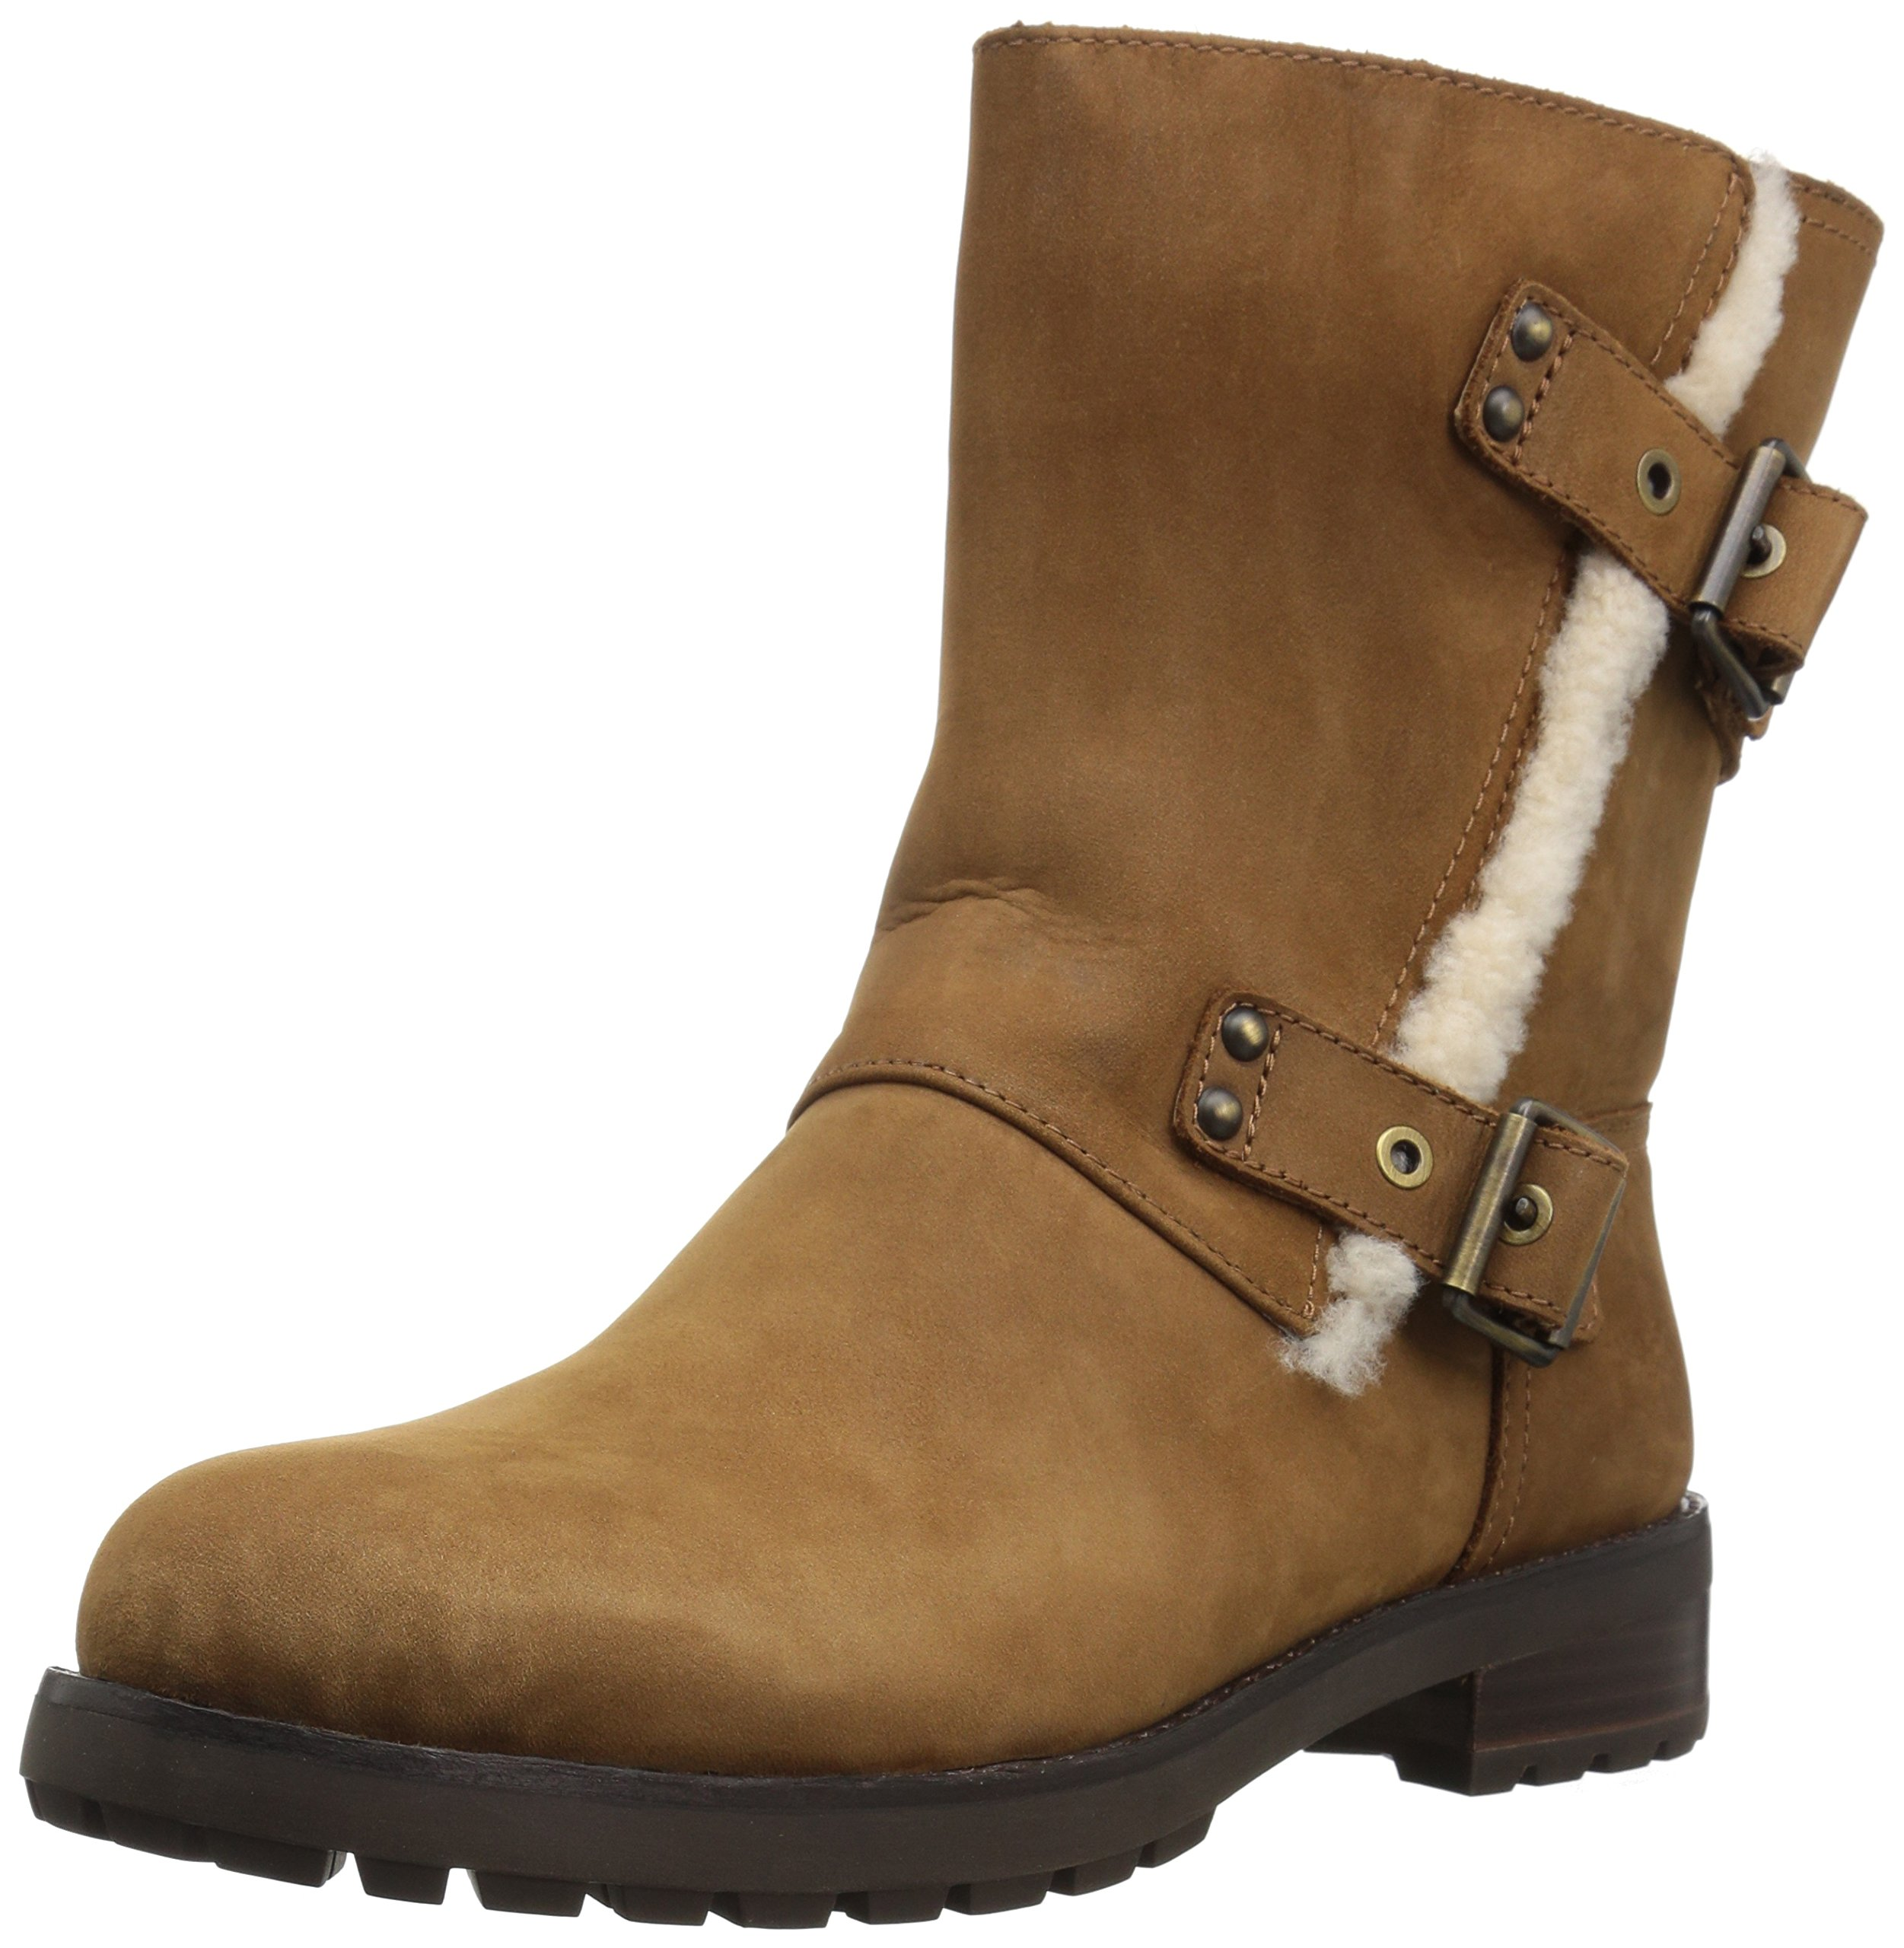 UGG Women's Niels Zippered Boot, Chestnut, 12 M US